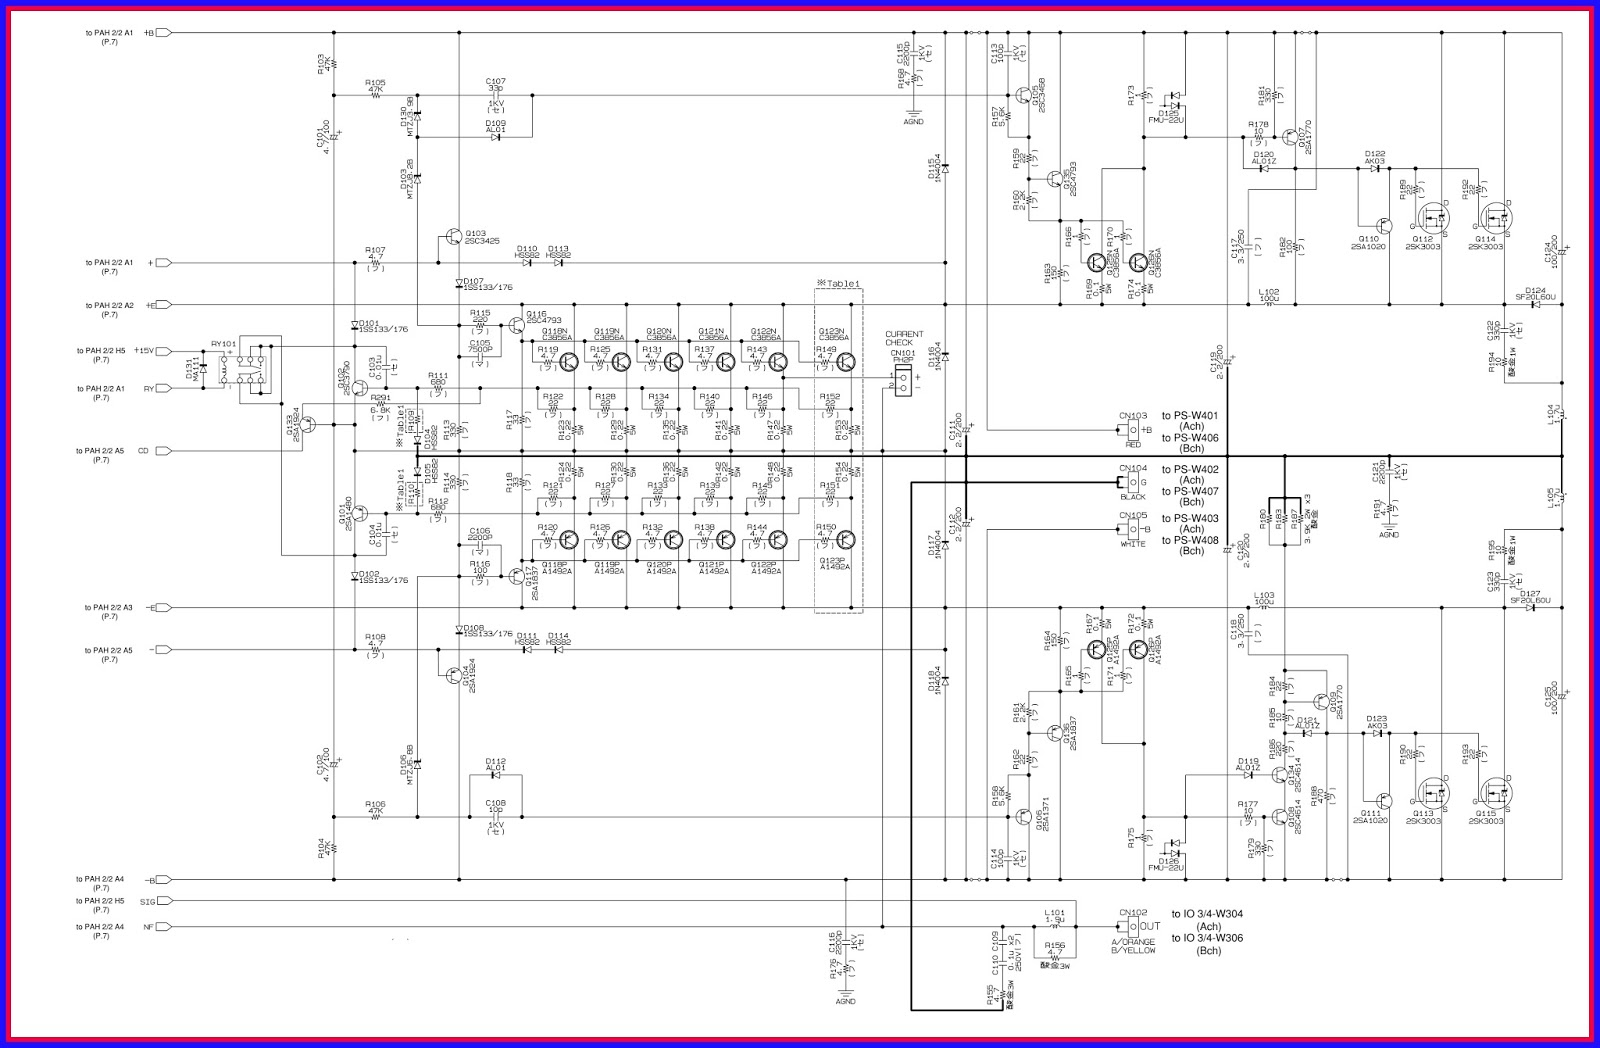 5000 Watts Amplifier Circuit Diagrams Wiring Library Current Detection Part Diagram Amplifiercircuit Electronic Equipment Repair Centre Yamaha Xp7000 Xp5000 Power Inspection Adjustments And